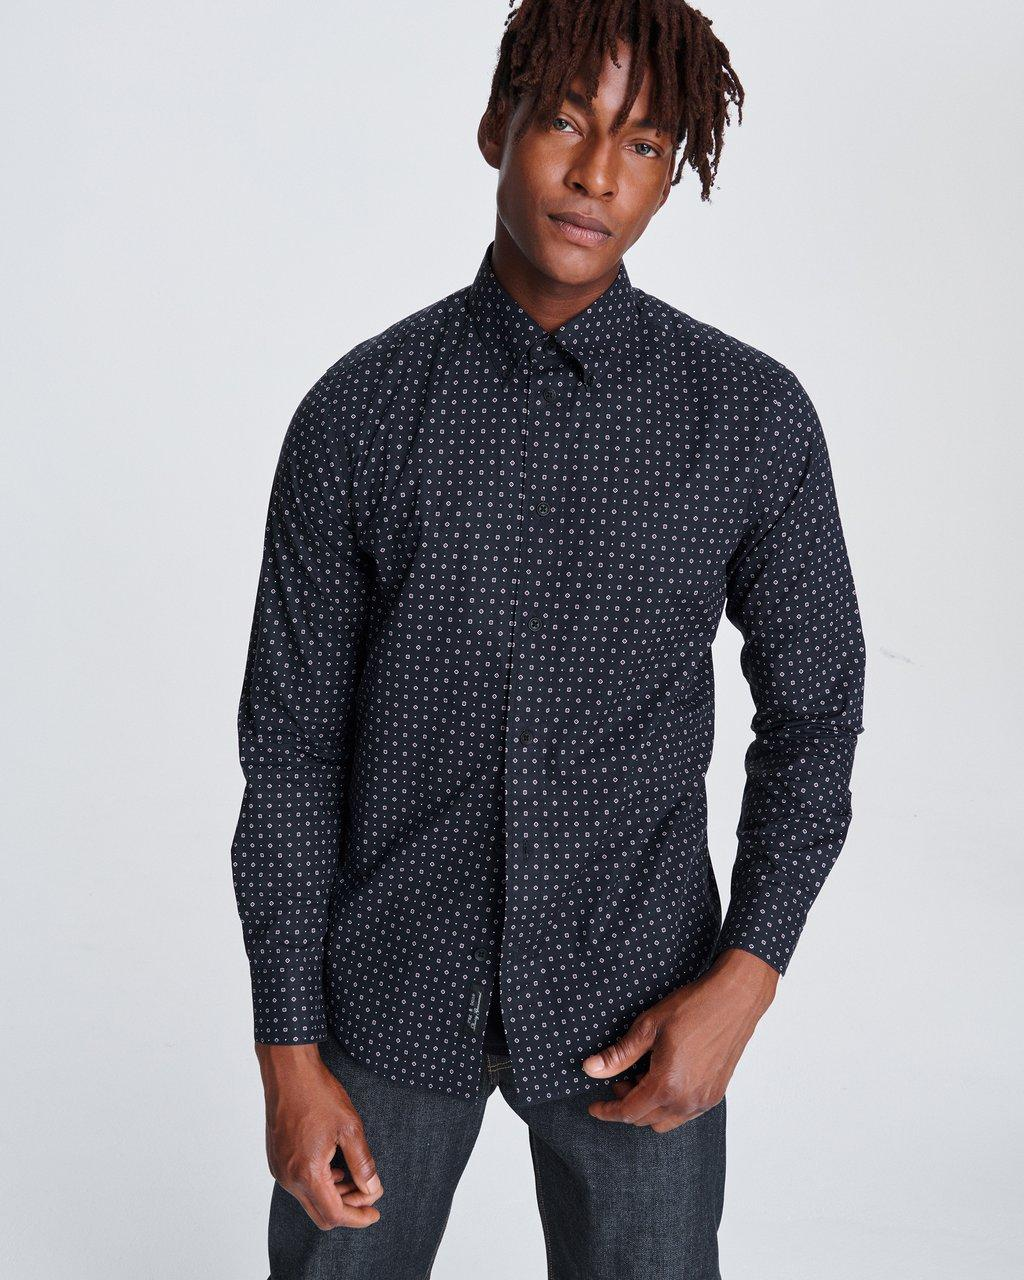 FIT 1 ZAC SHIRT